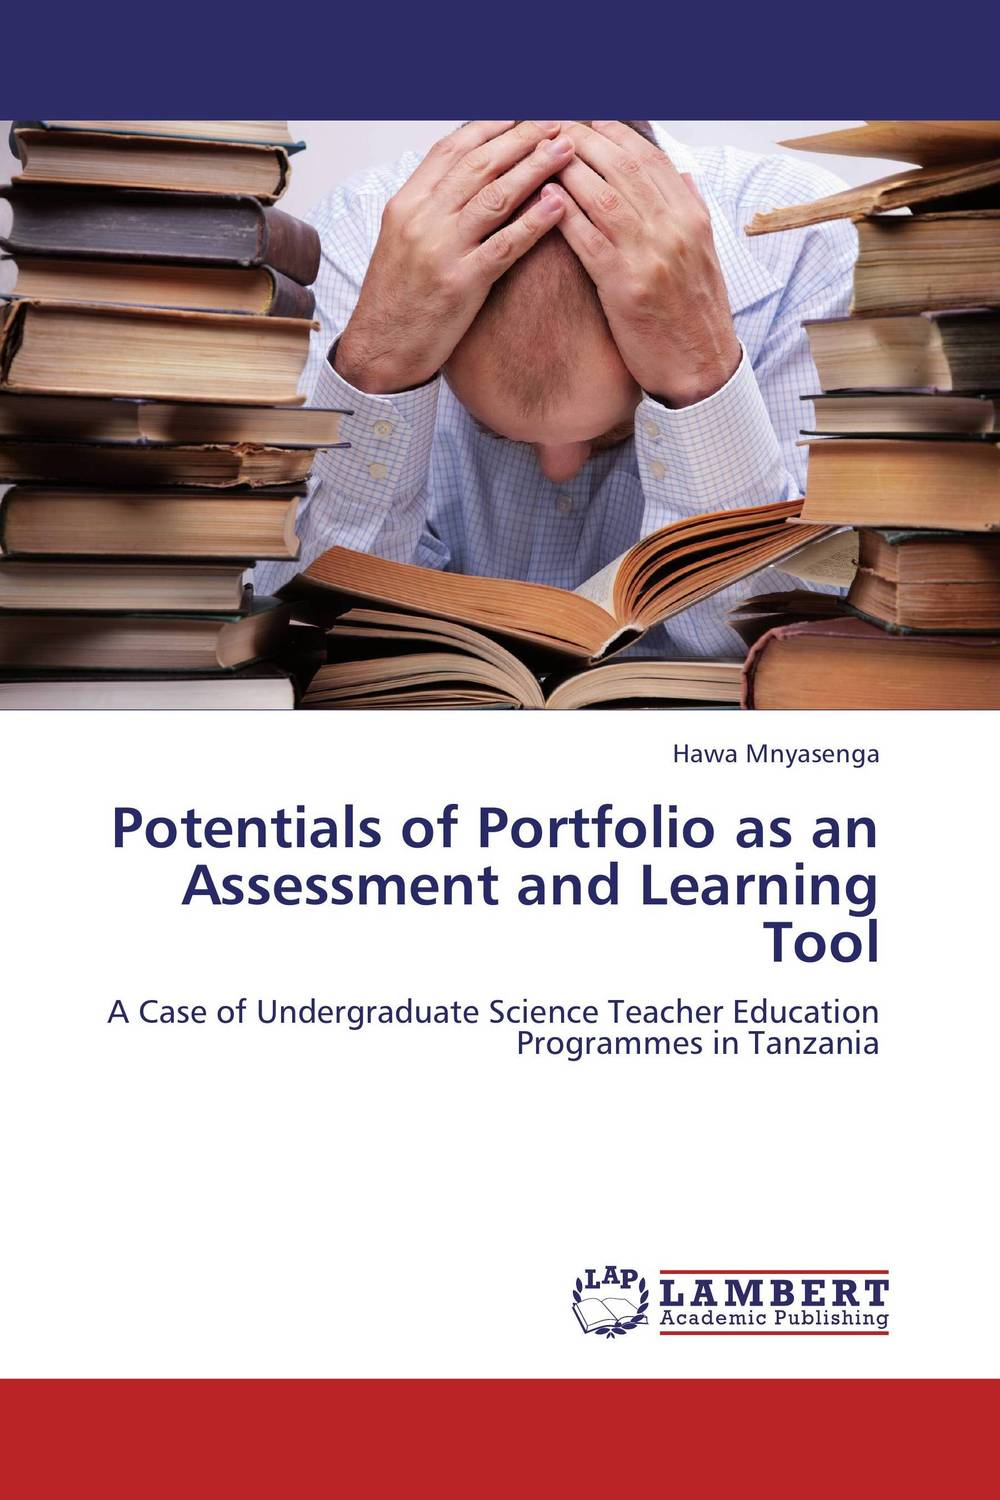 Potentials of Portfolio as an Assessment and Learning Tool learning resources набор пробей